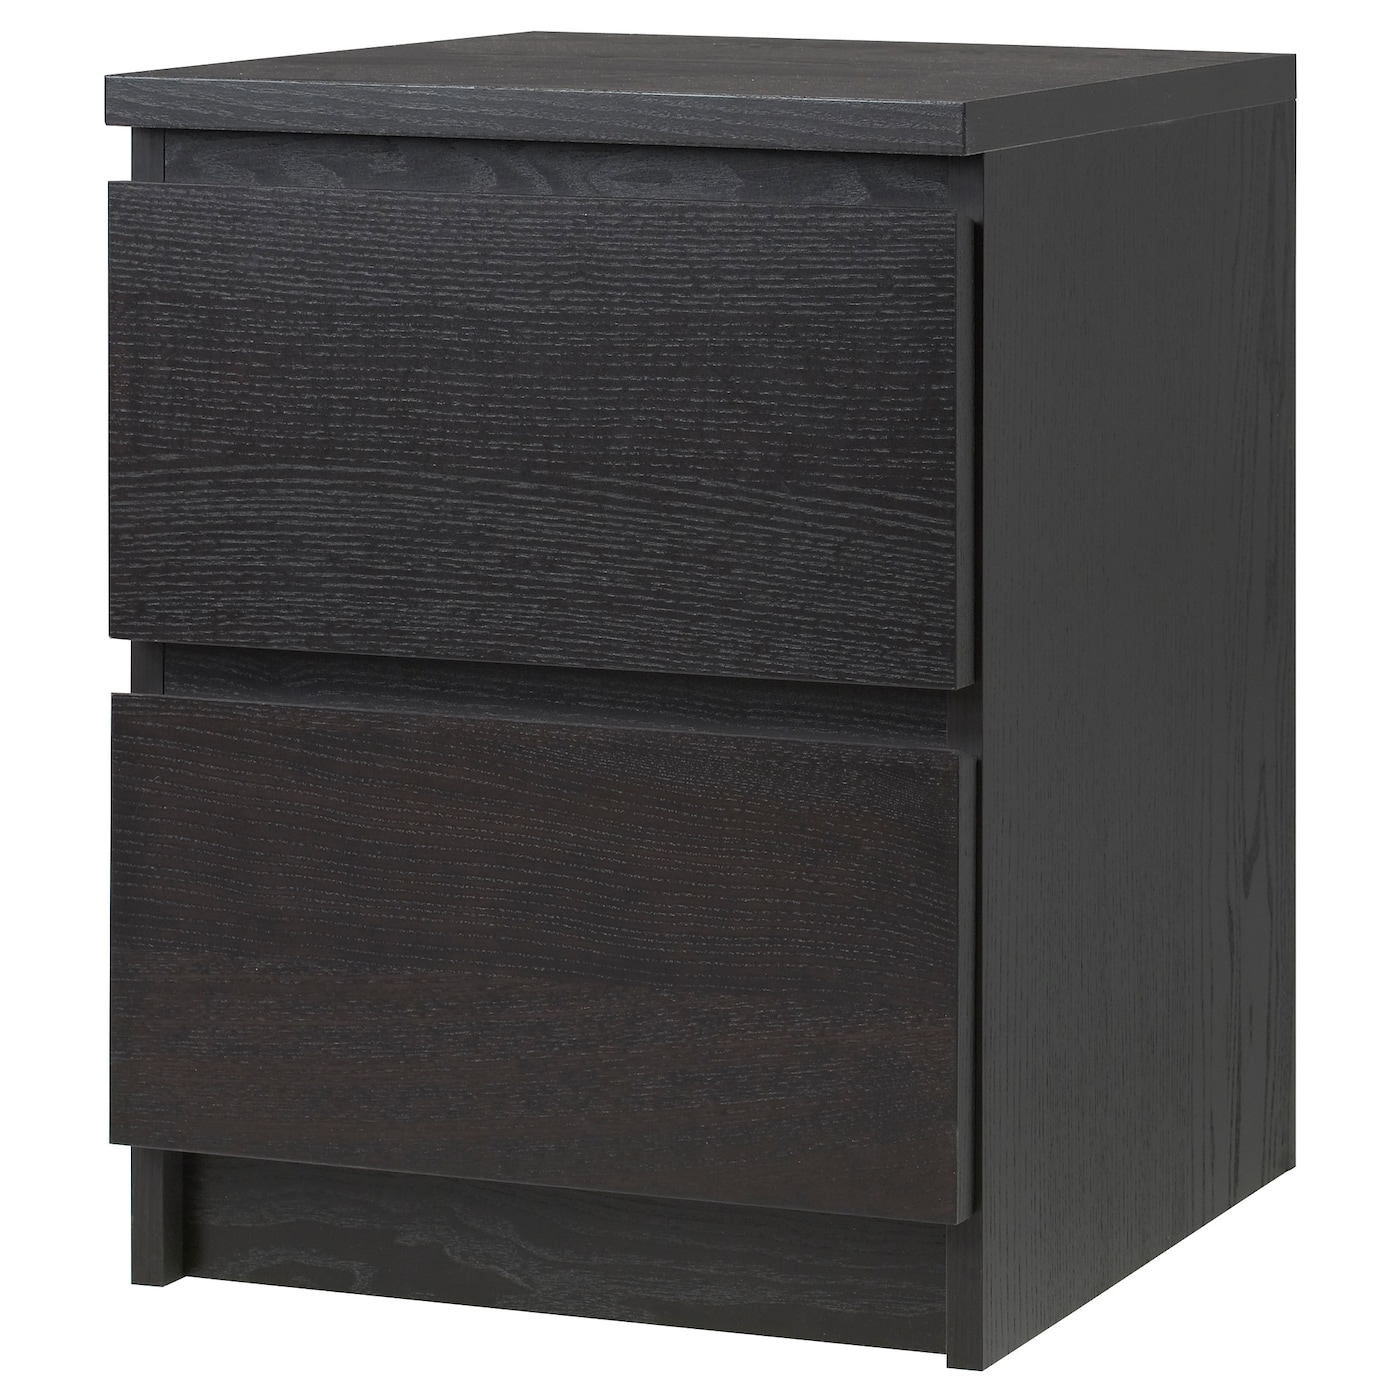 Malm chest of 2 drawers black brown 40x55 cm ikea - Black days ikea ...